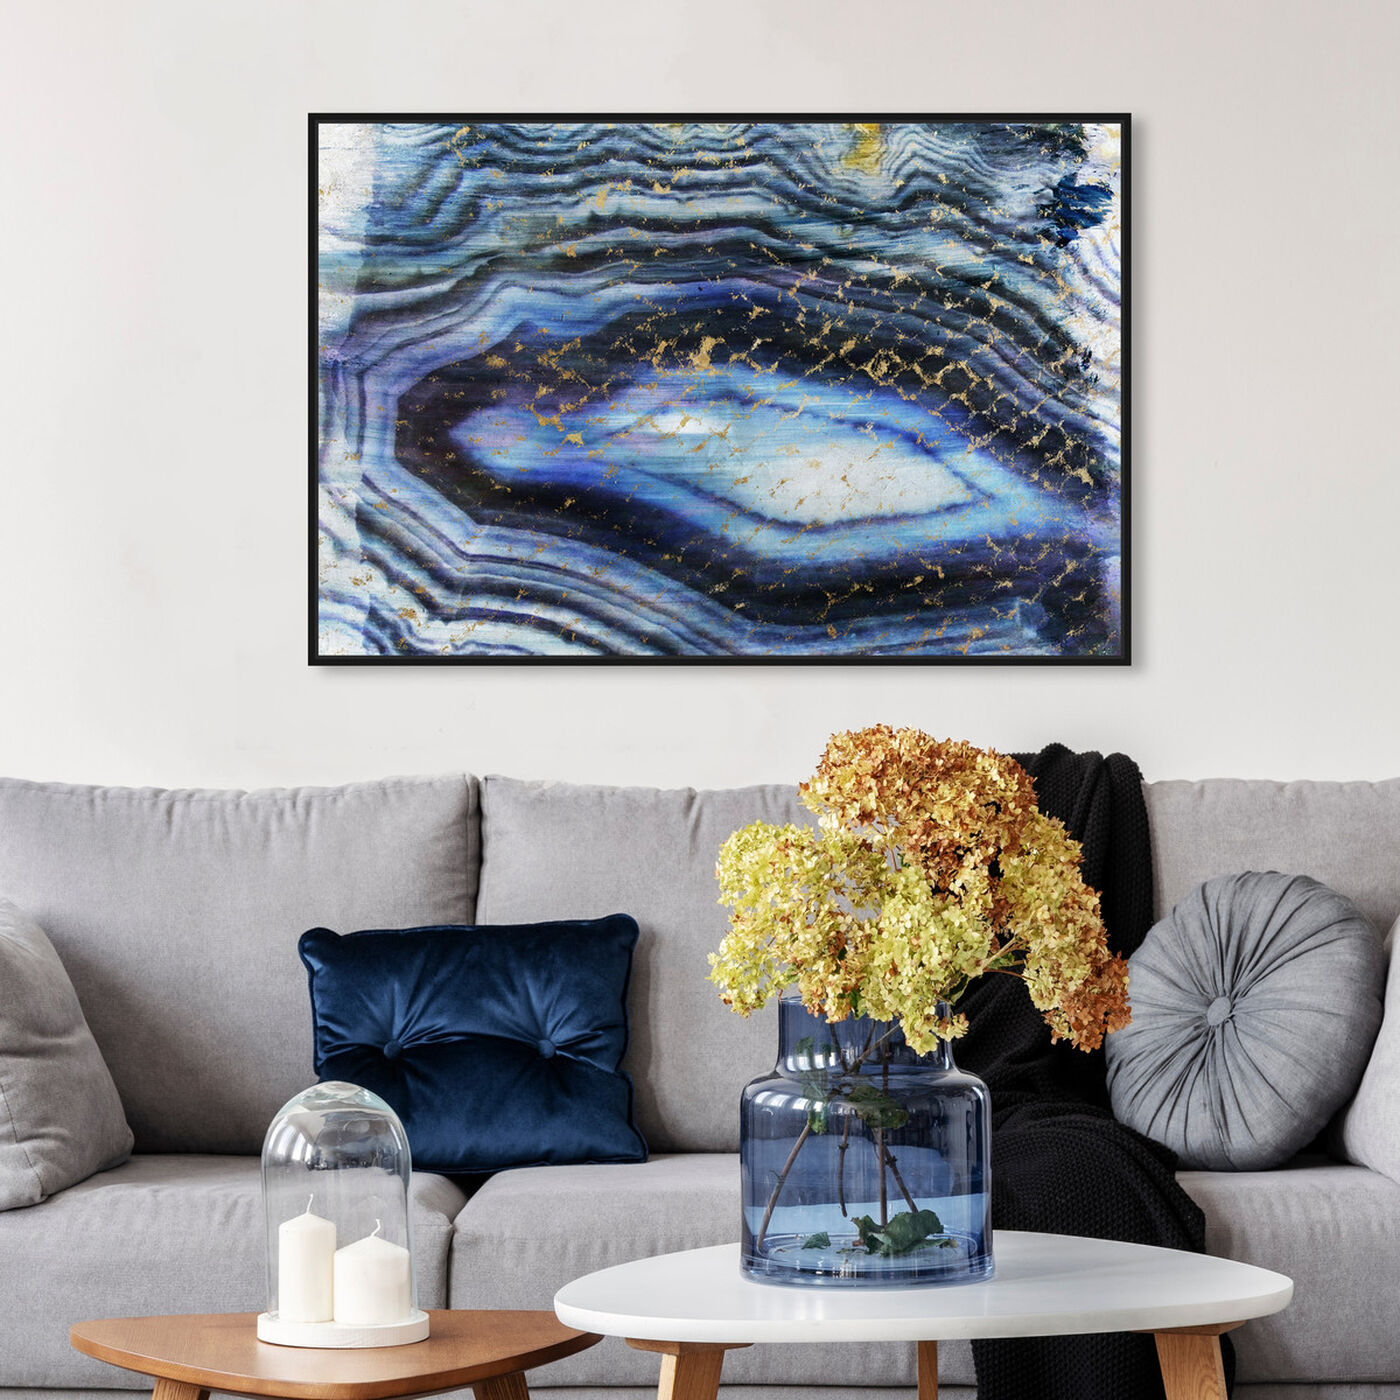 Hanging view of Sea of Gold featuring abstract and crystals art.